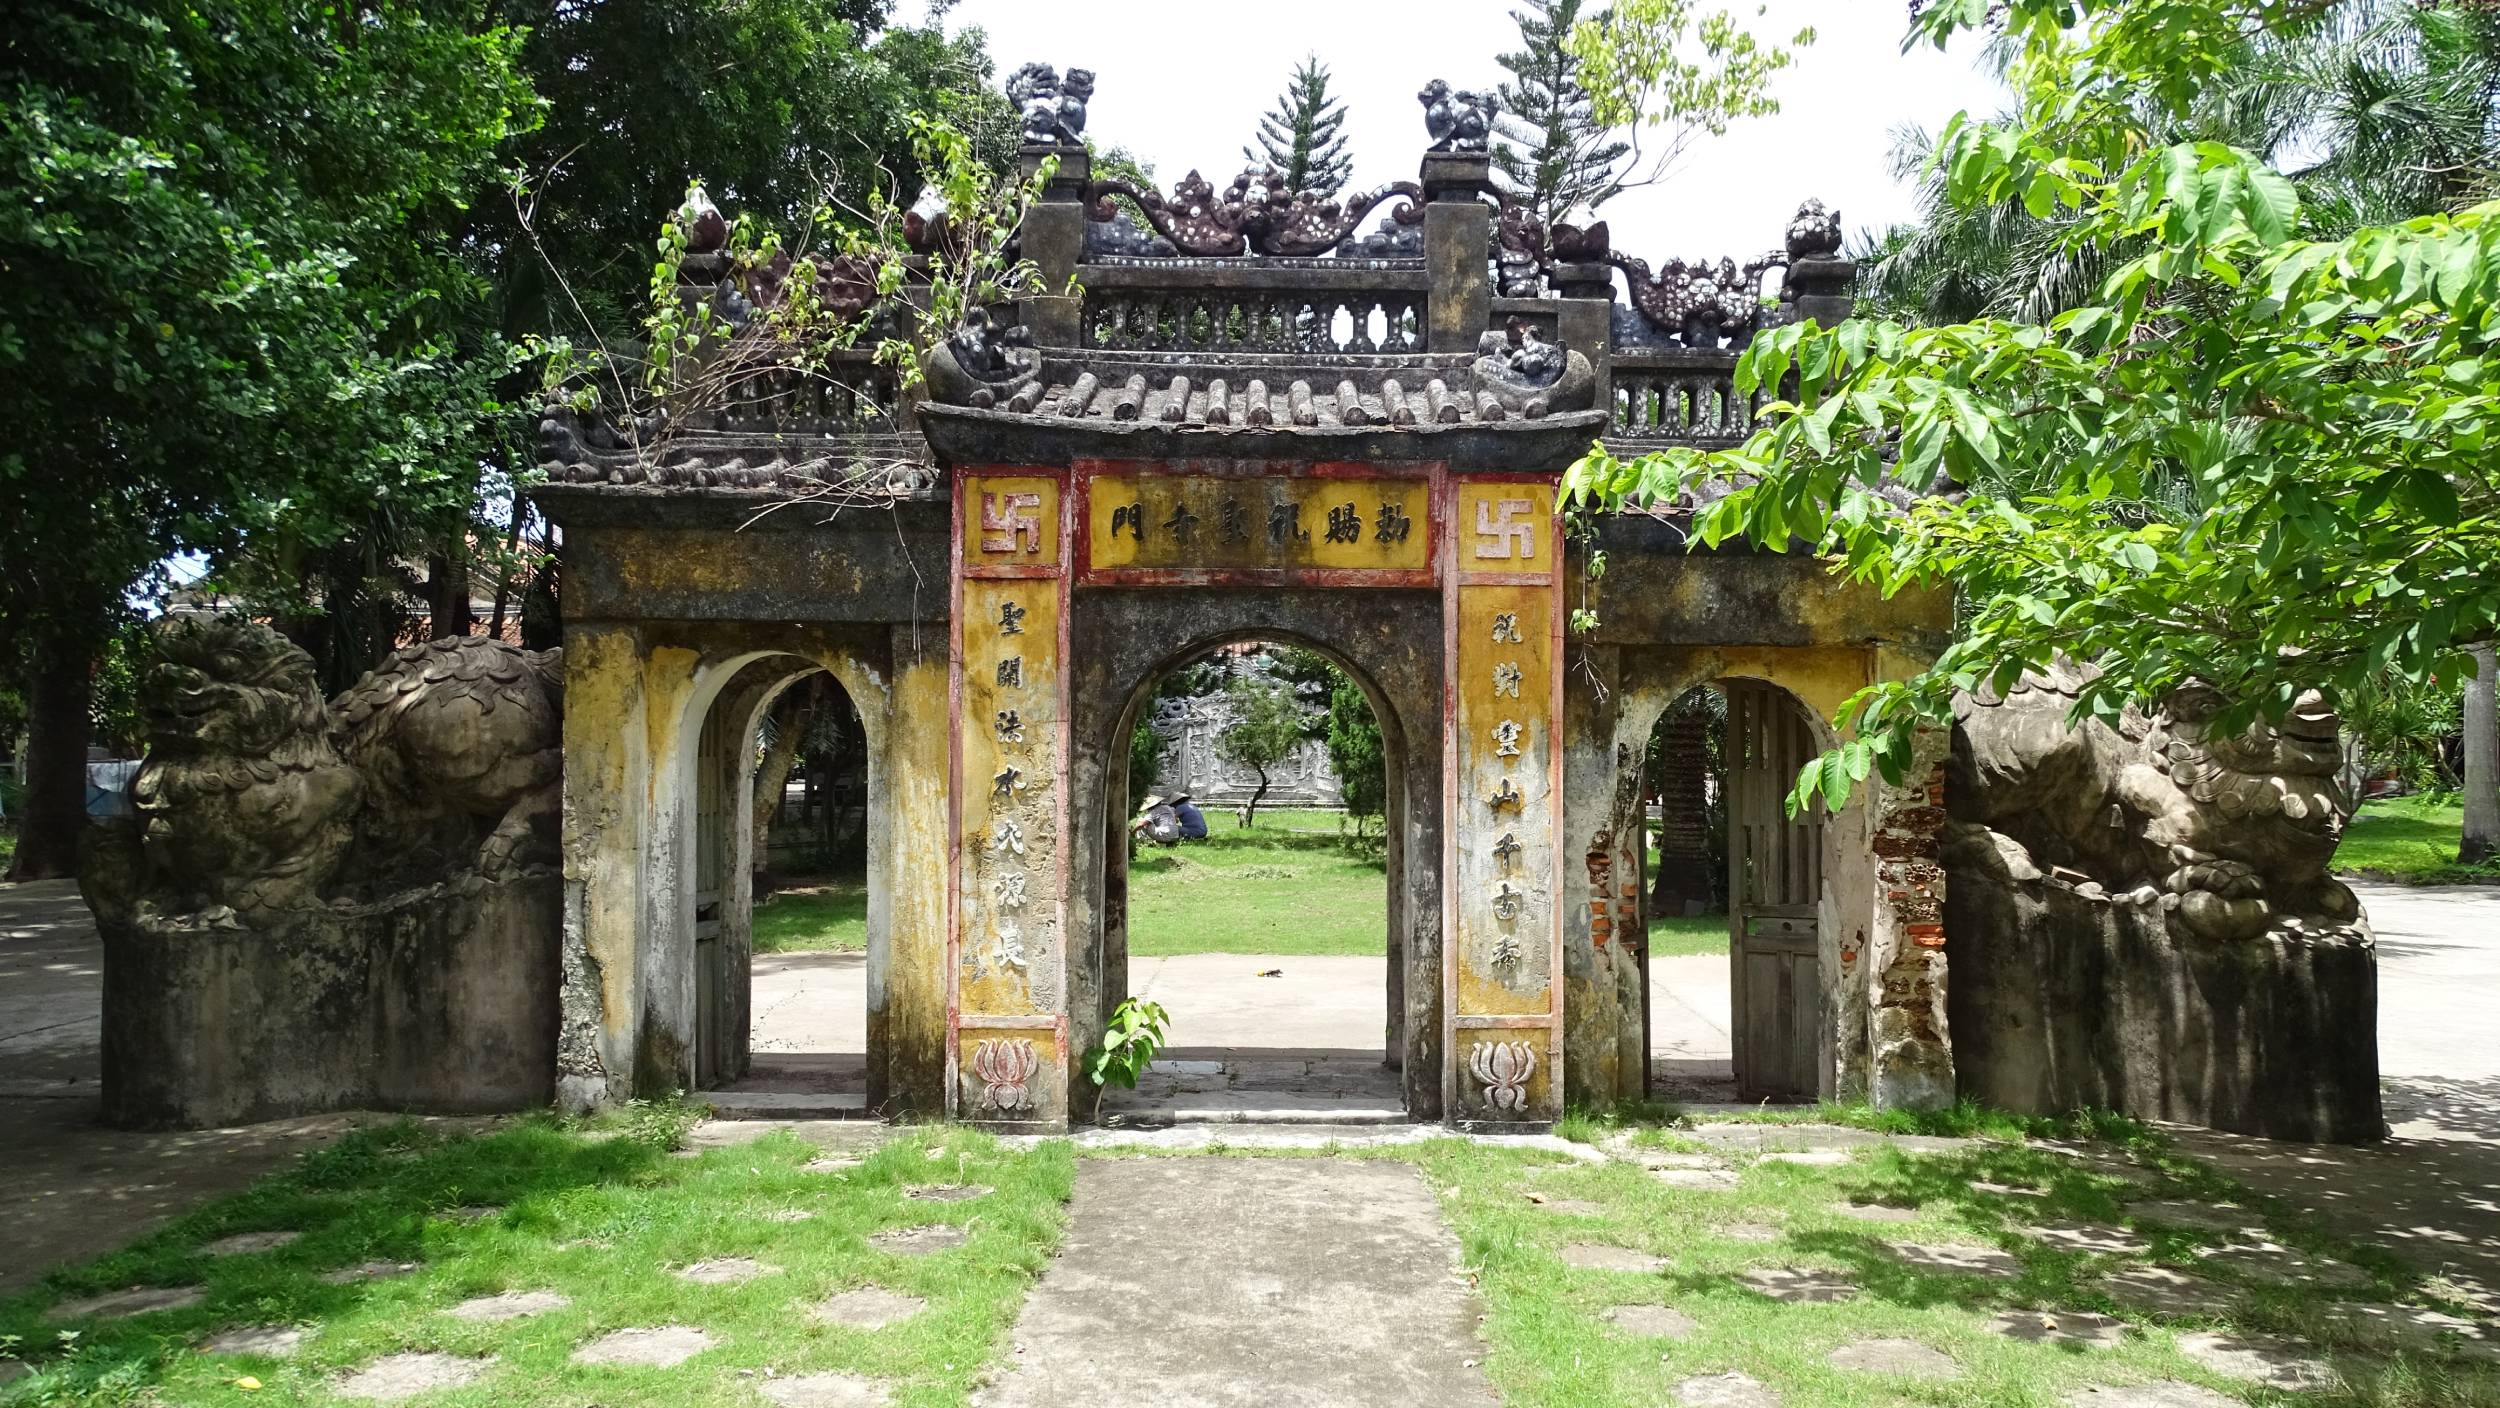 A triple gate leading to a temple in Tan An area of Hoi An